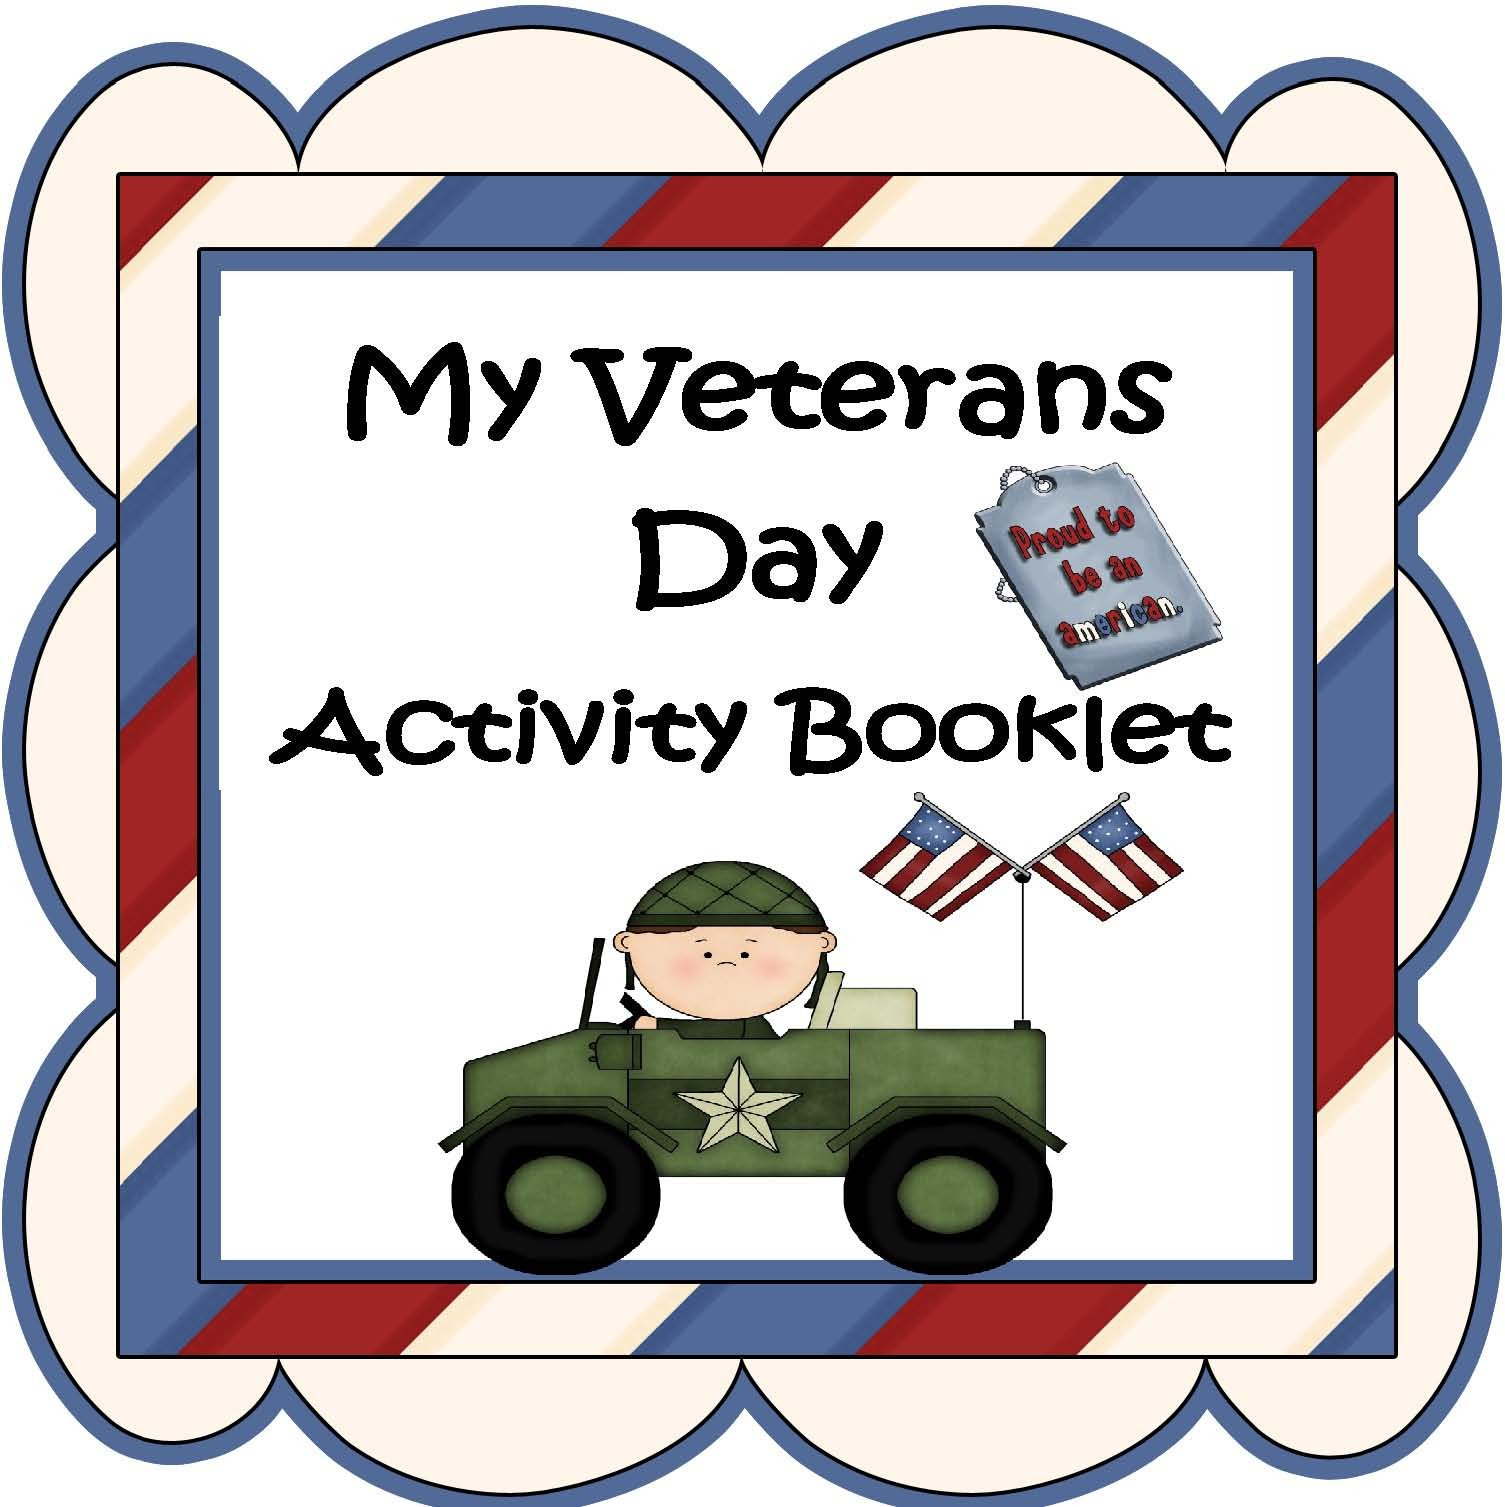 Veterans Day Worksheets for Kindergarten Engaging Lessons and Activities Veteran S Day Activity Booklet